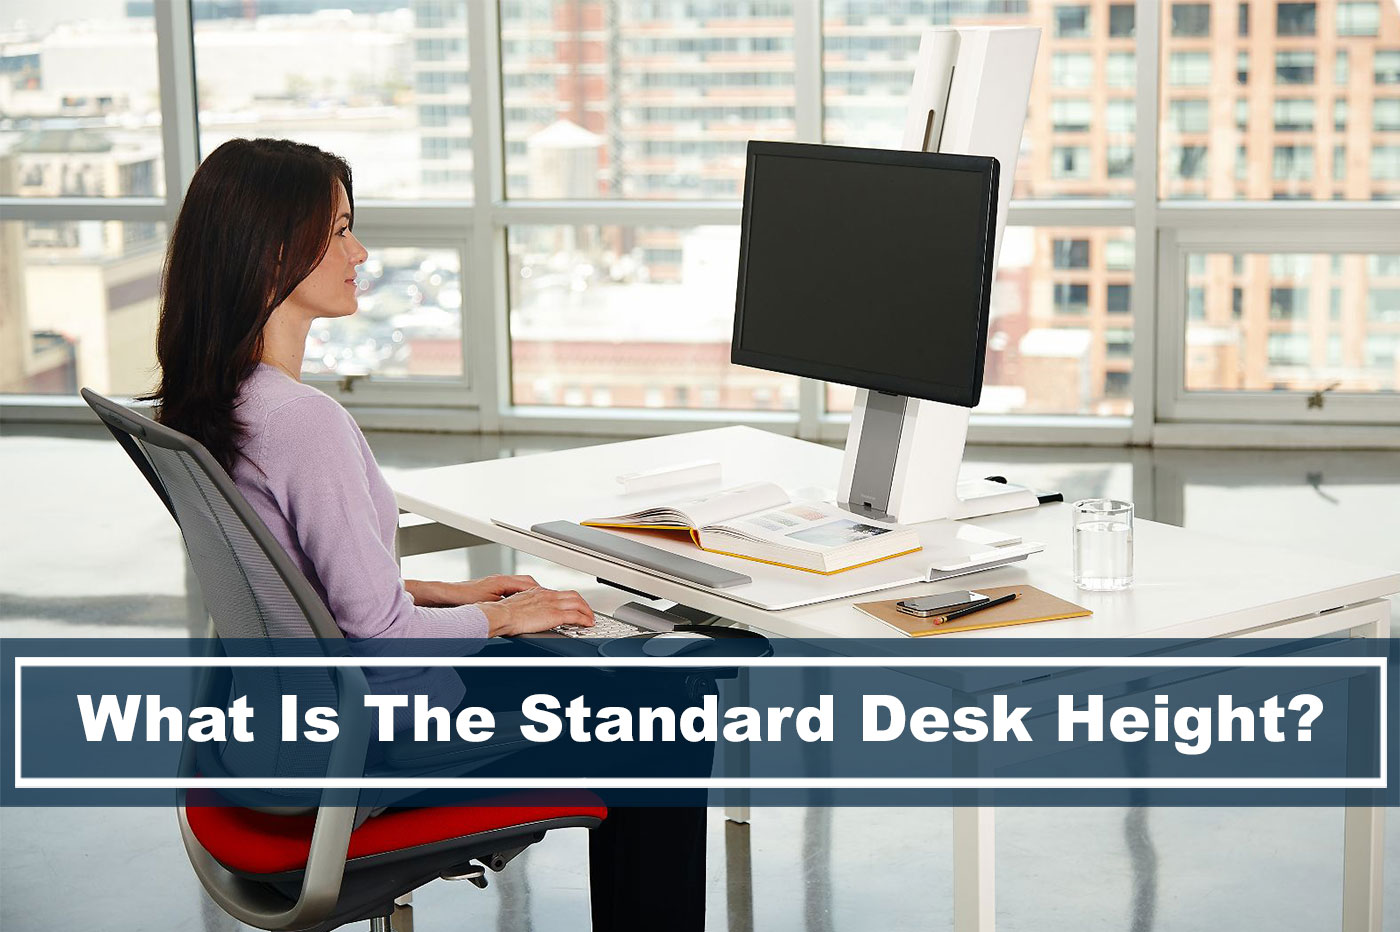 What is the standard desk height for best posture and